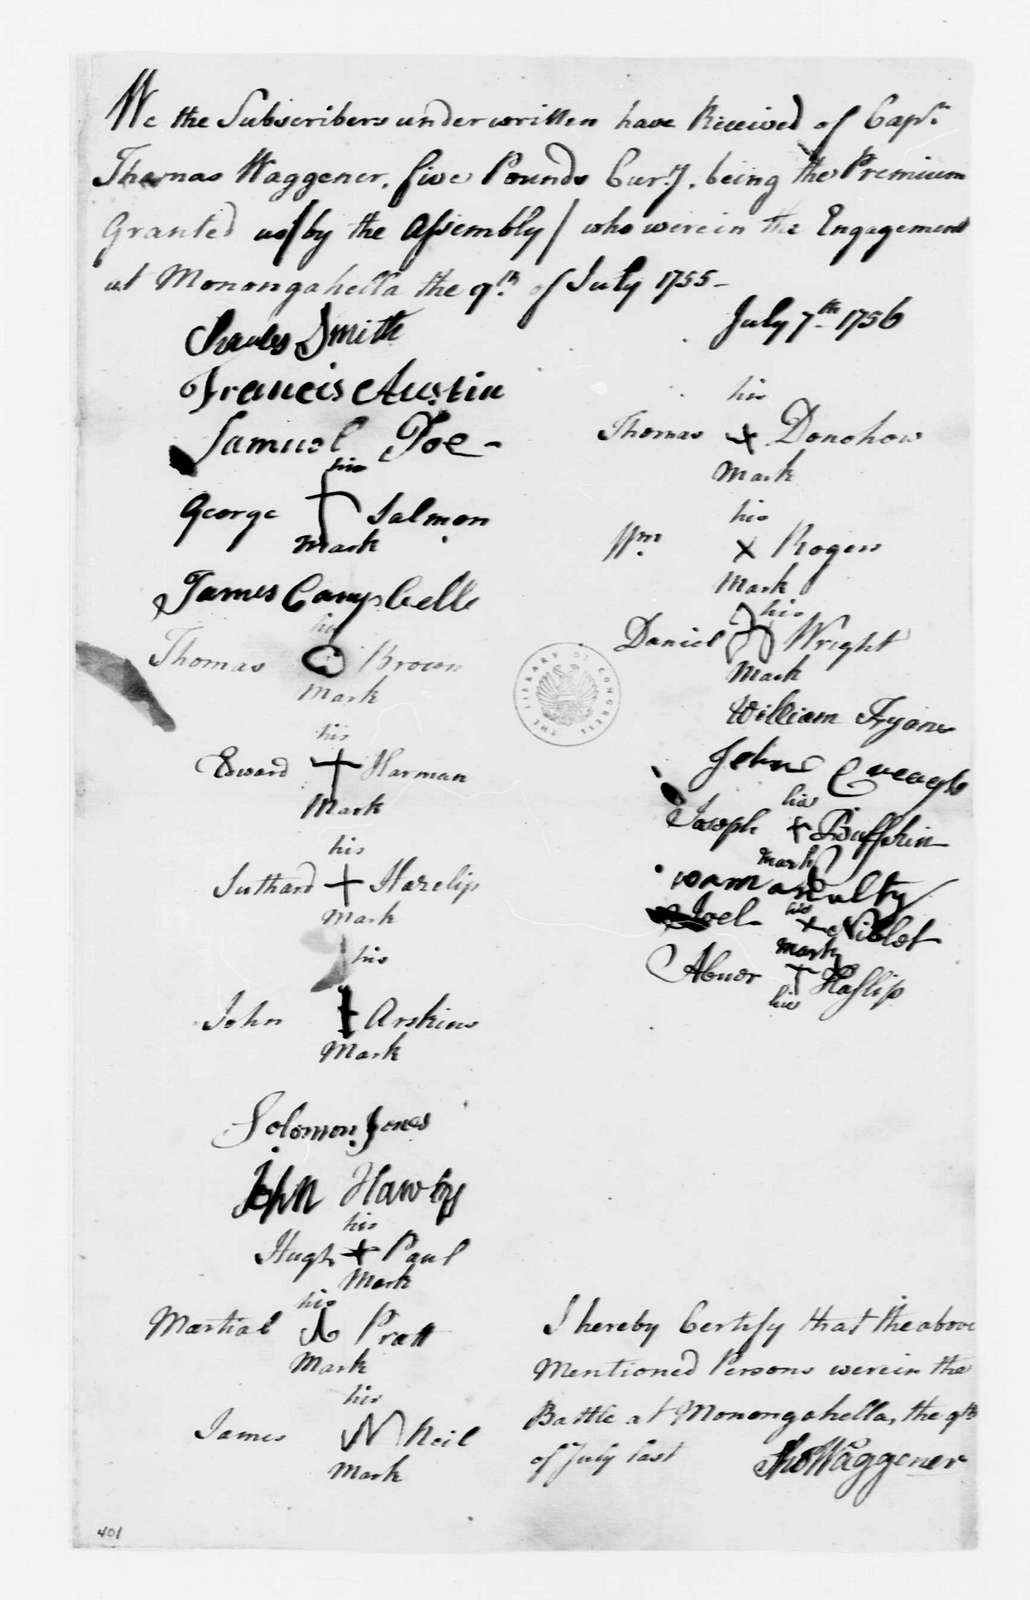 George Washington Papers, Series 4, General Correspondence: Thomas Waggener, July 9, 1756, Company Payroll Receipt